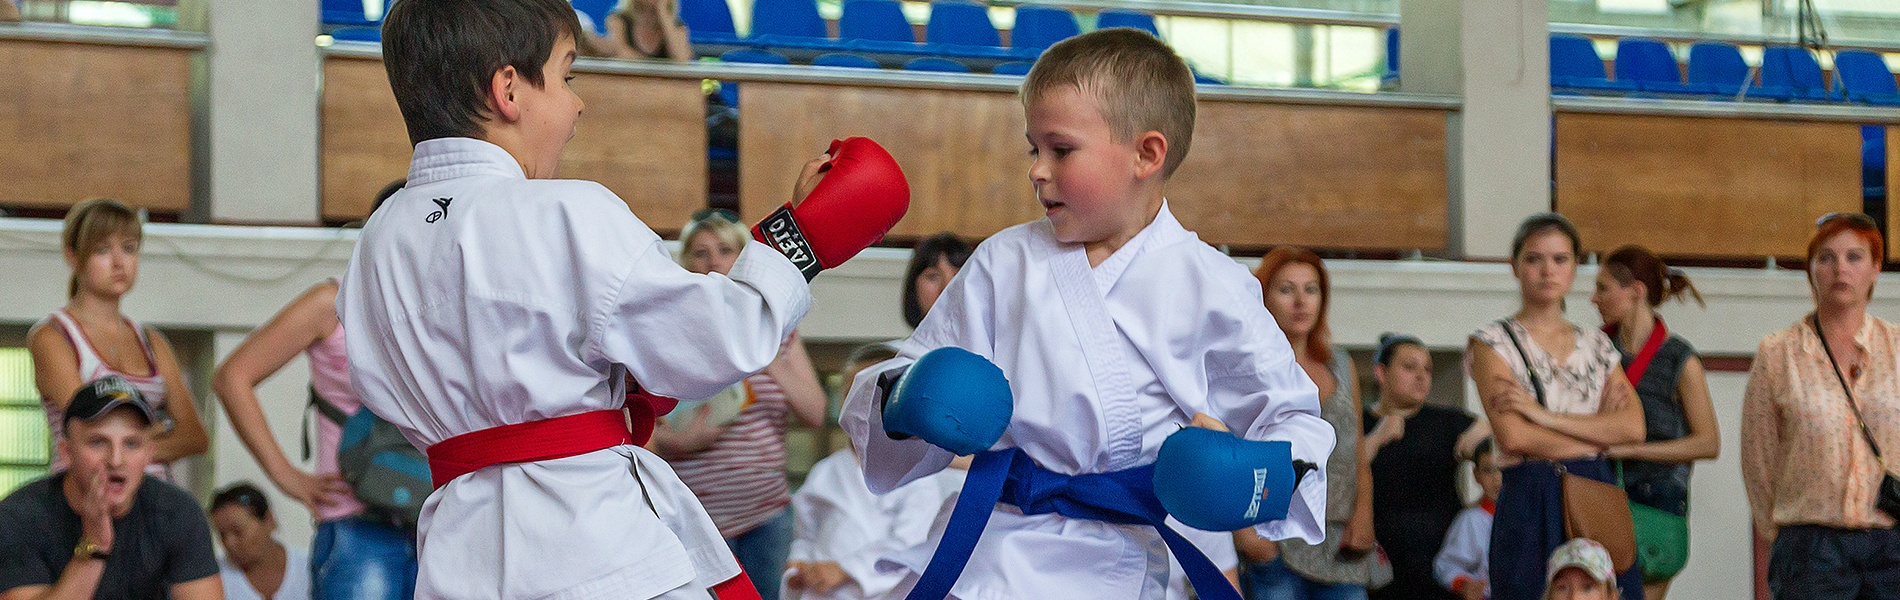 Blog-5 Ways to Successfully Promote Your Next Martial Arts Event.jpg